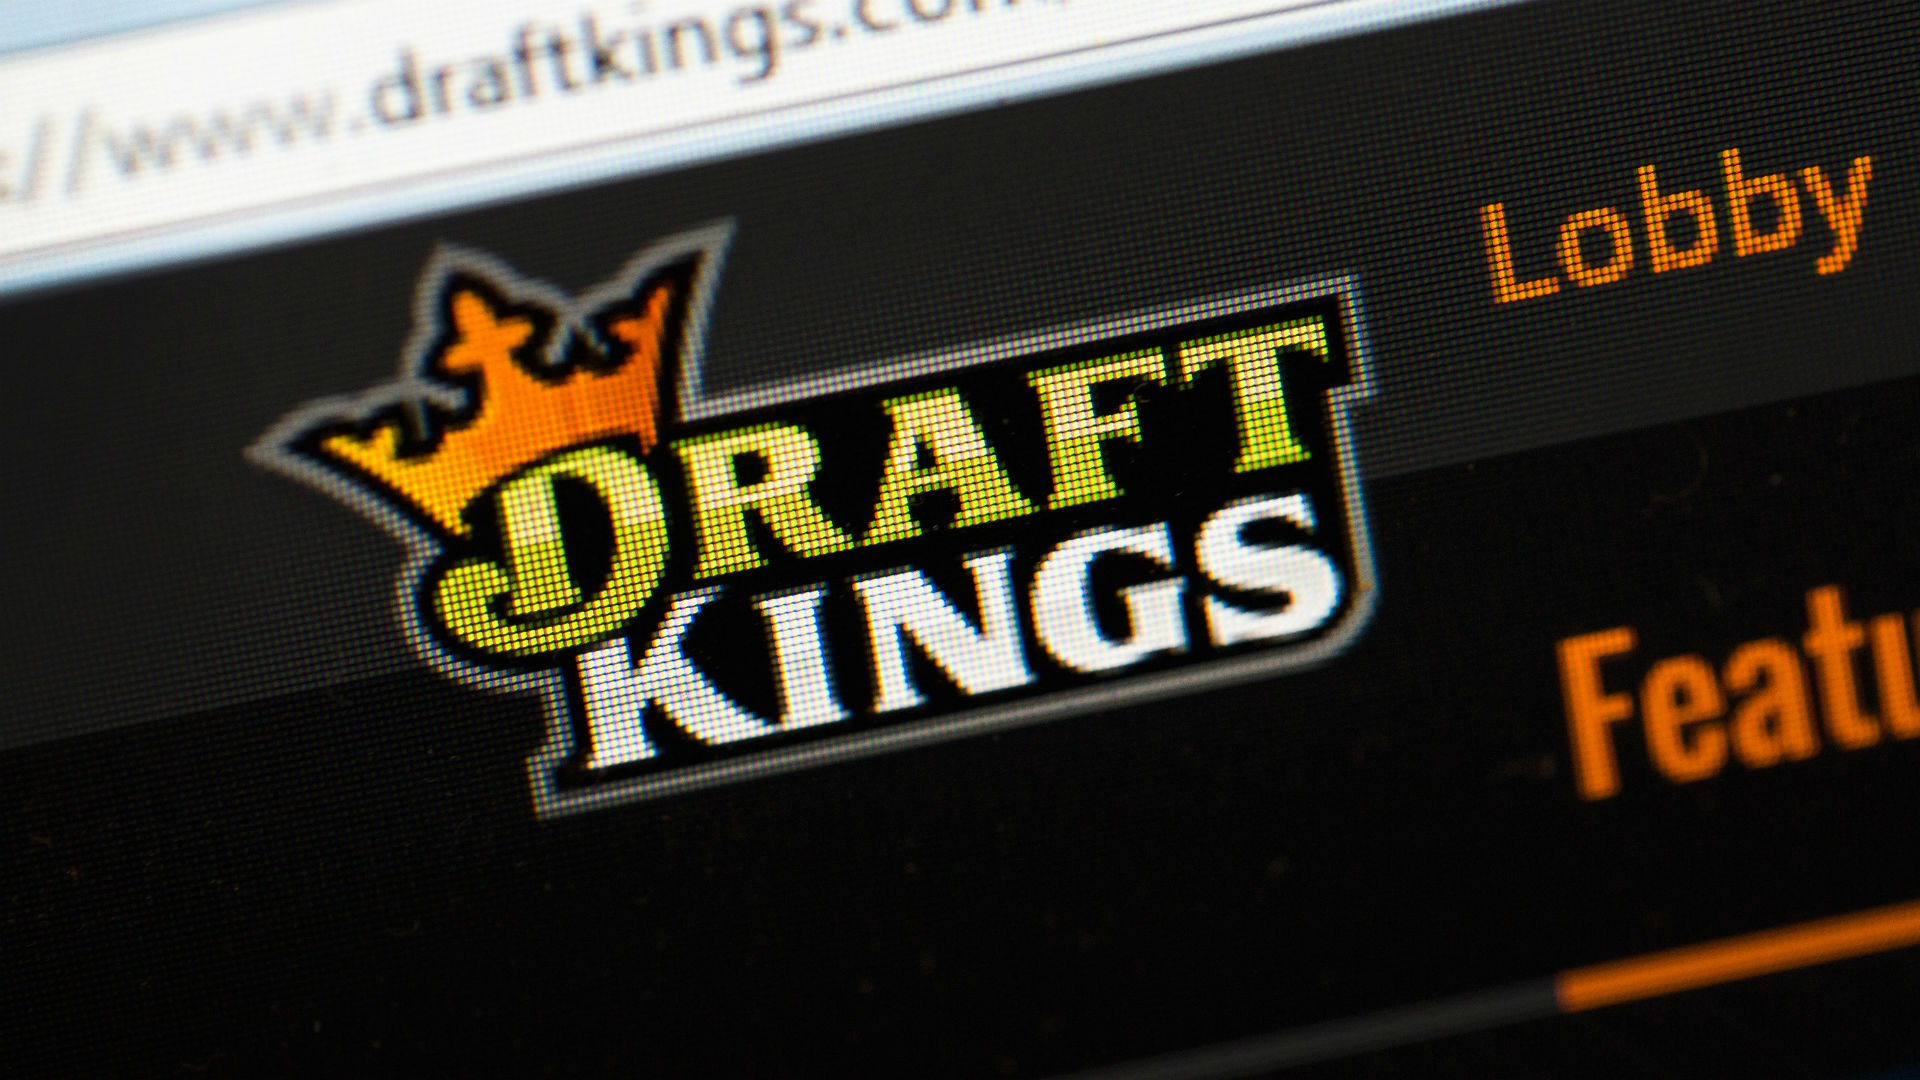 The firm that handled fantasy sports payments just dumped DraftKings and FanDuel